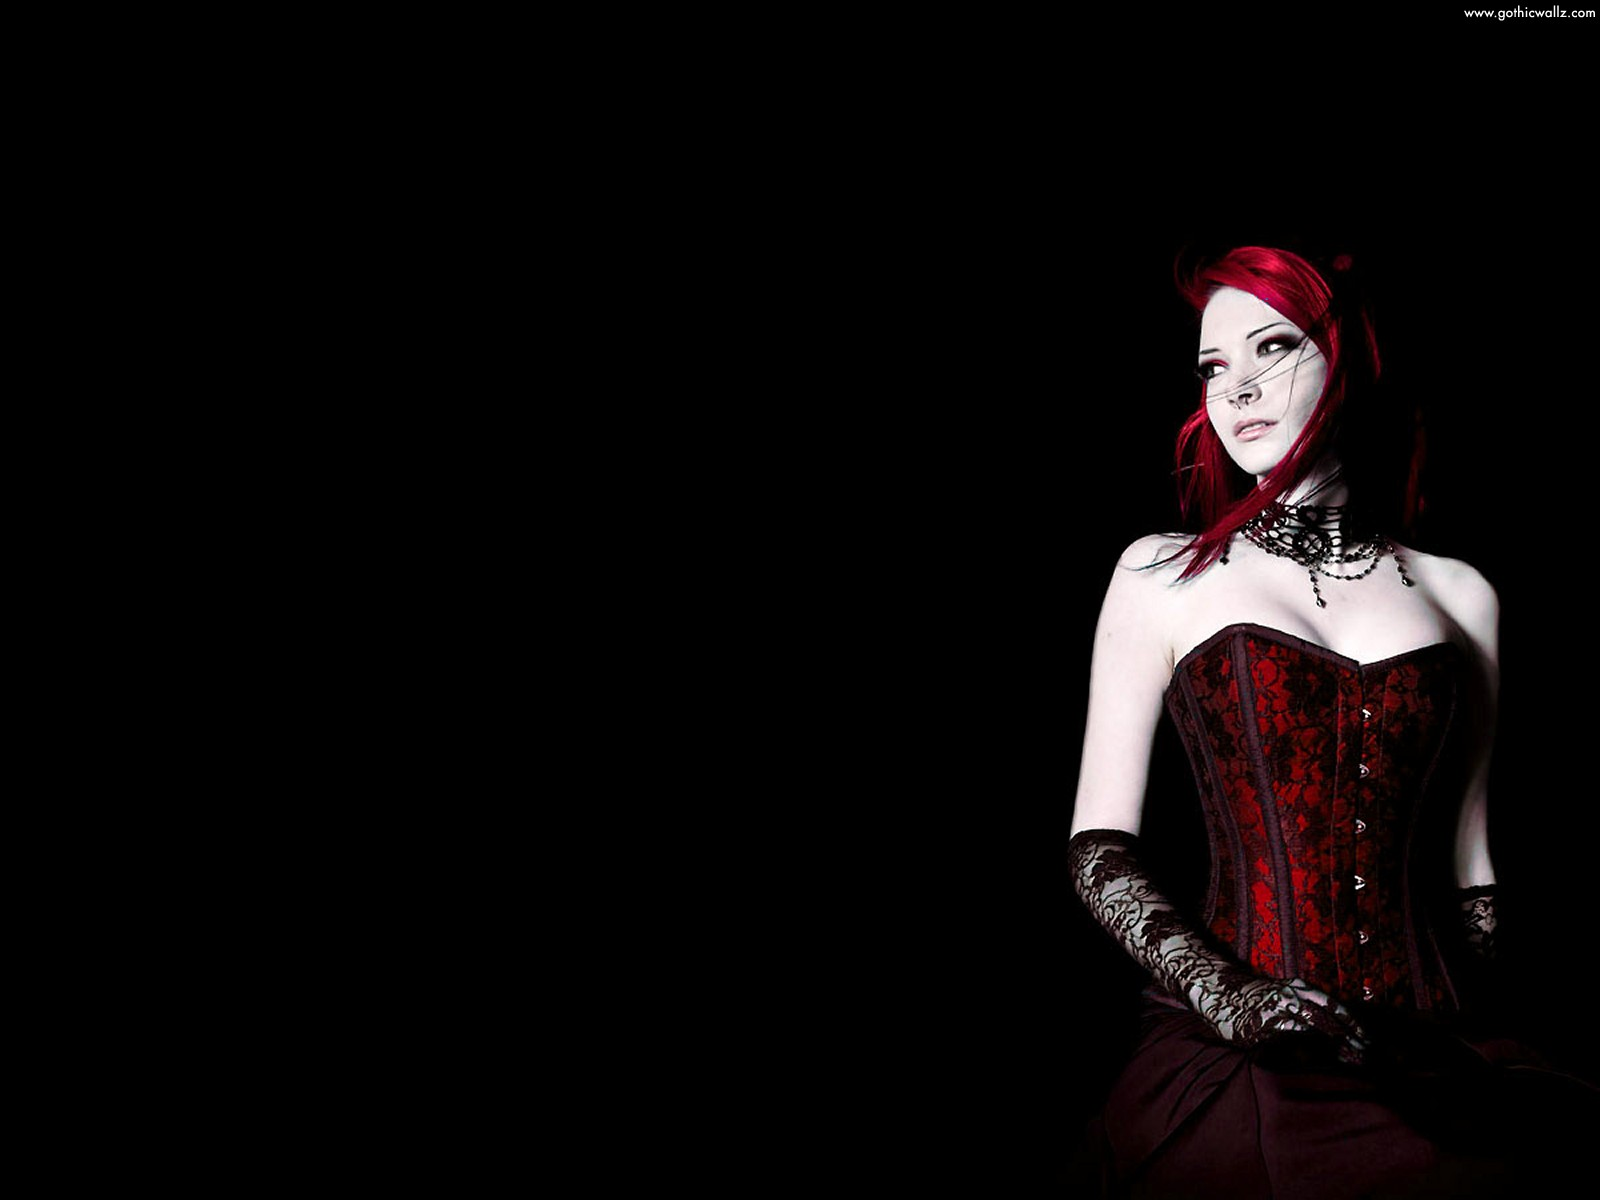 gothic girls wallpaper by - photo #37